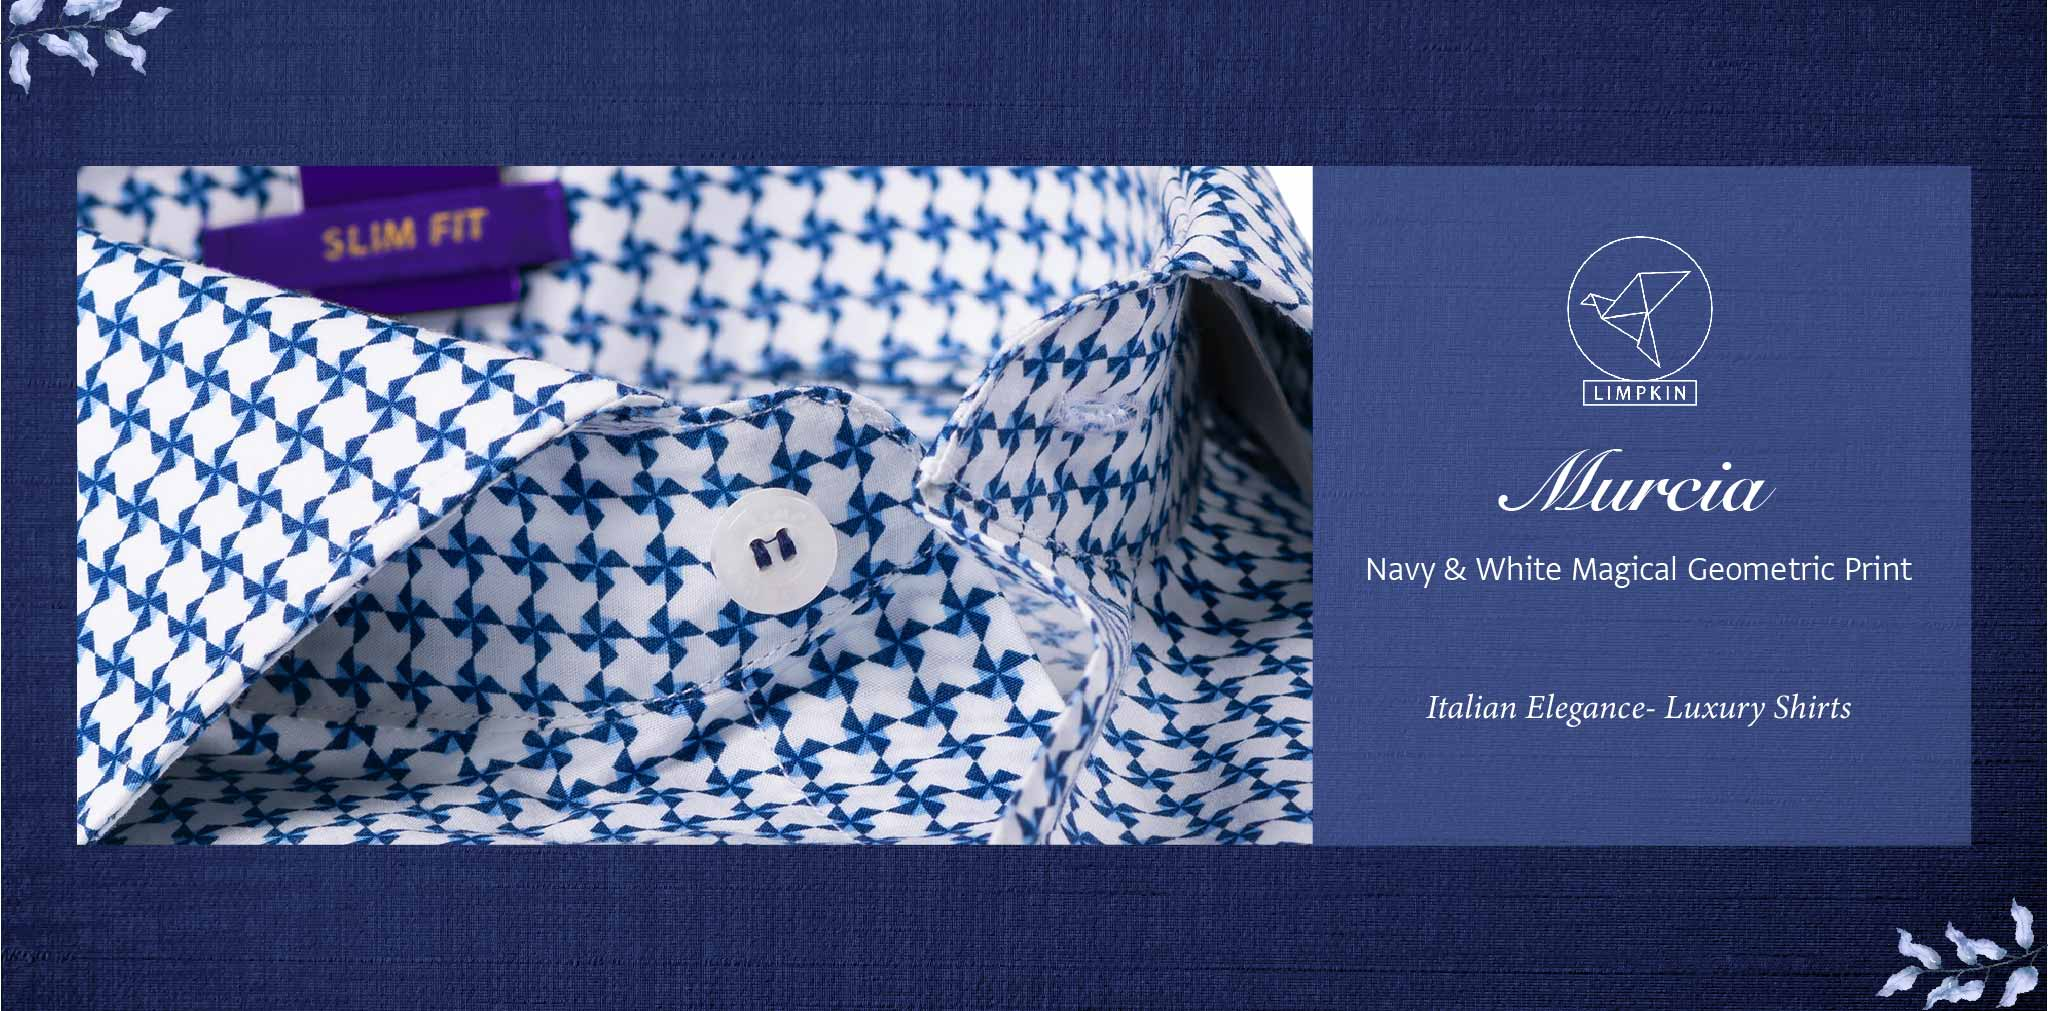 Murcia- Navy & White Magical Geometric Print- Pure Egyptian Giza Cotton- Delivery from 10th March - Banner